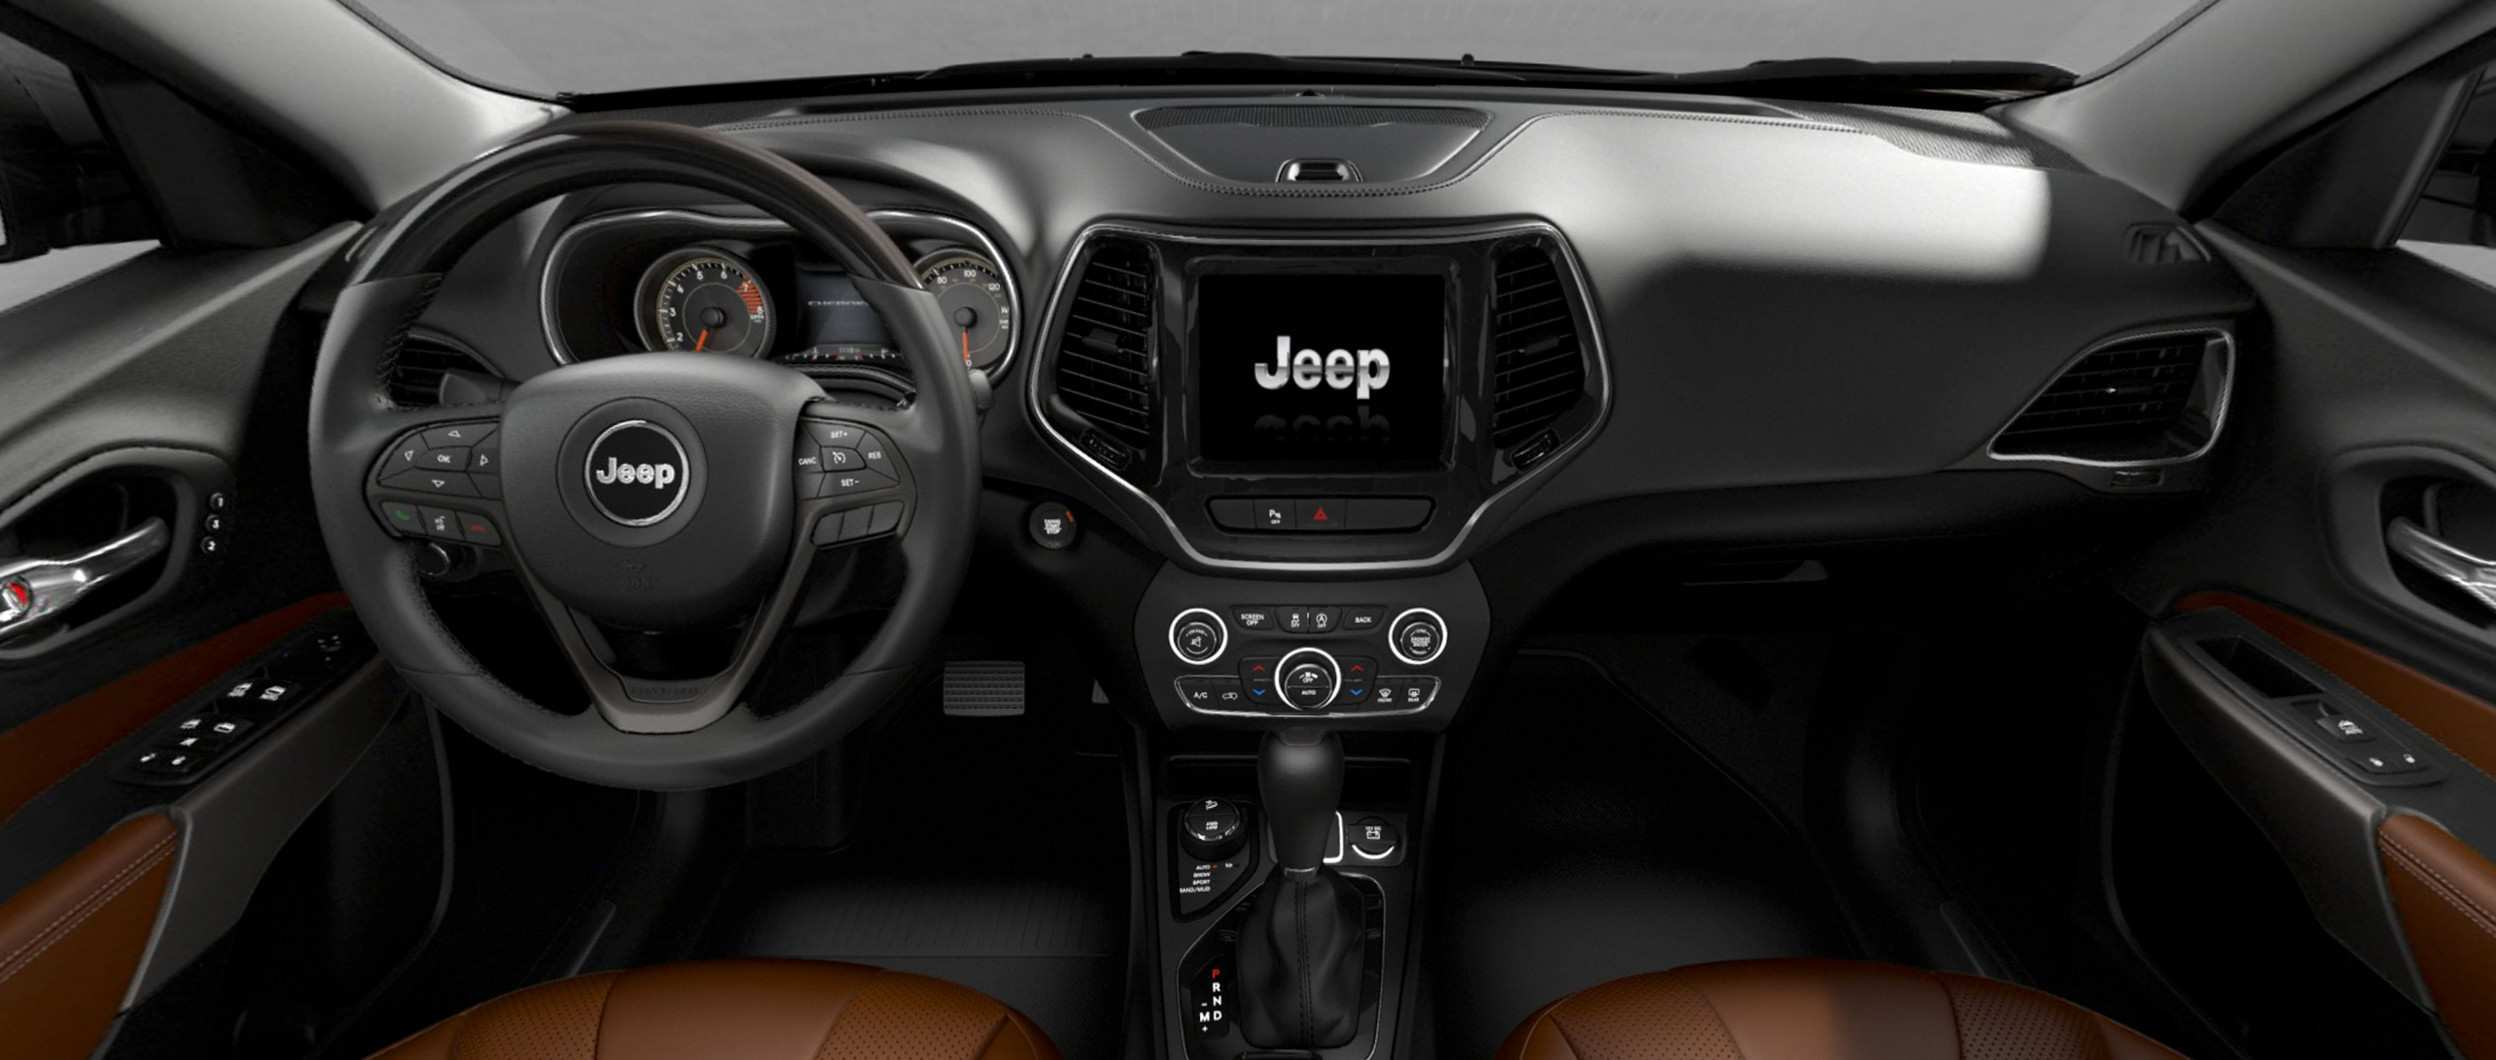 63 All New Jeep Vehicles 2019 Interior Specs and Review with Jeep Vehicles 2019 Interior